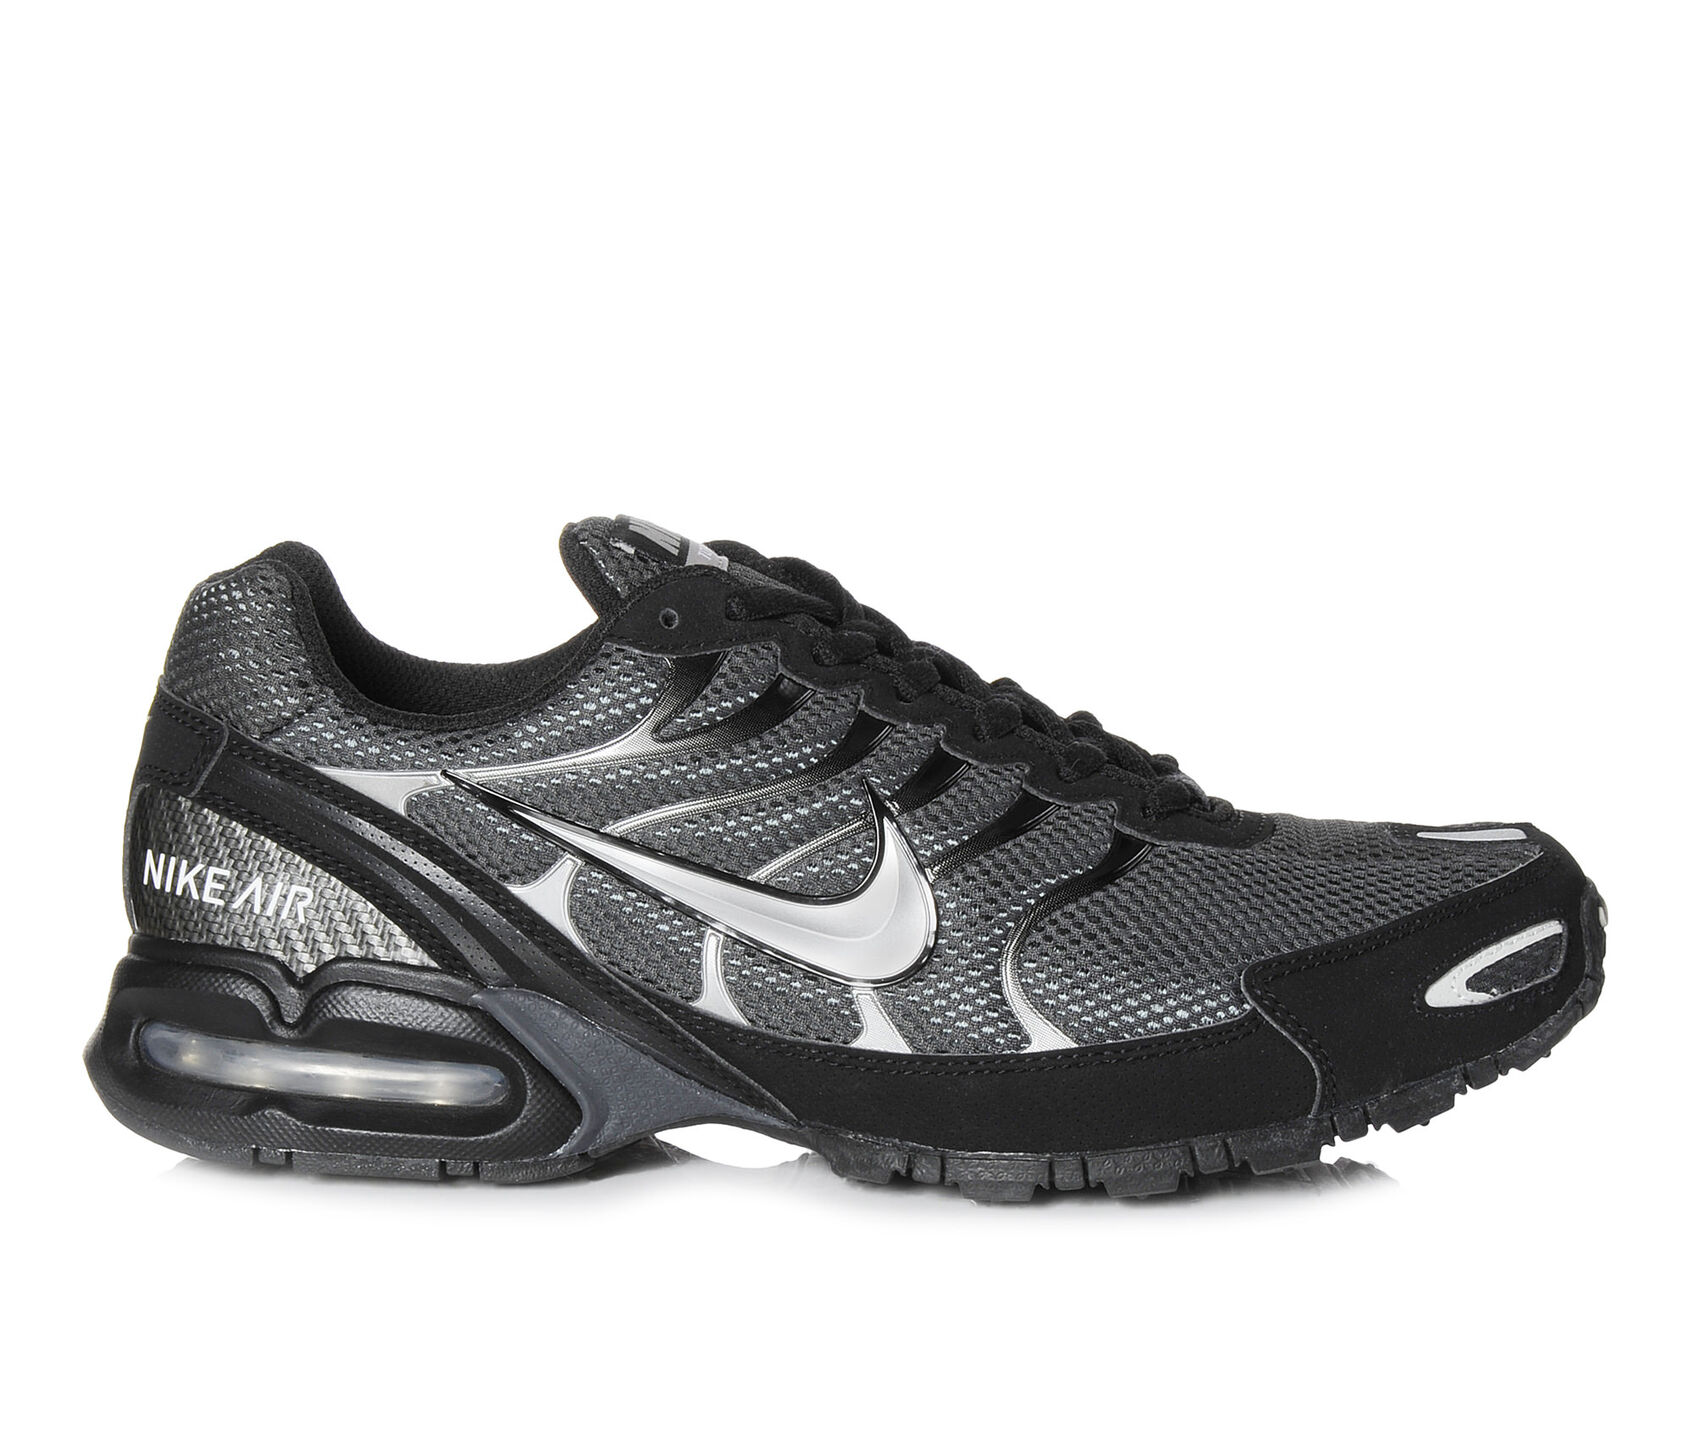 922f17aa30a3 ... Nike Air Max Torch 4 Running Shoes. Previous